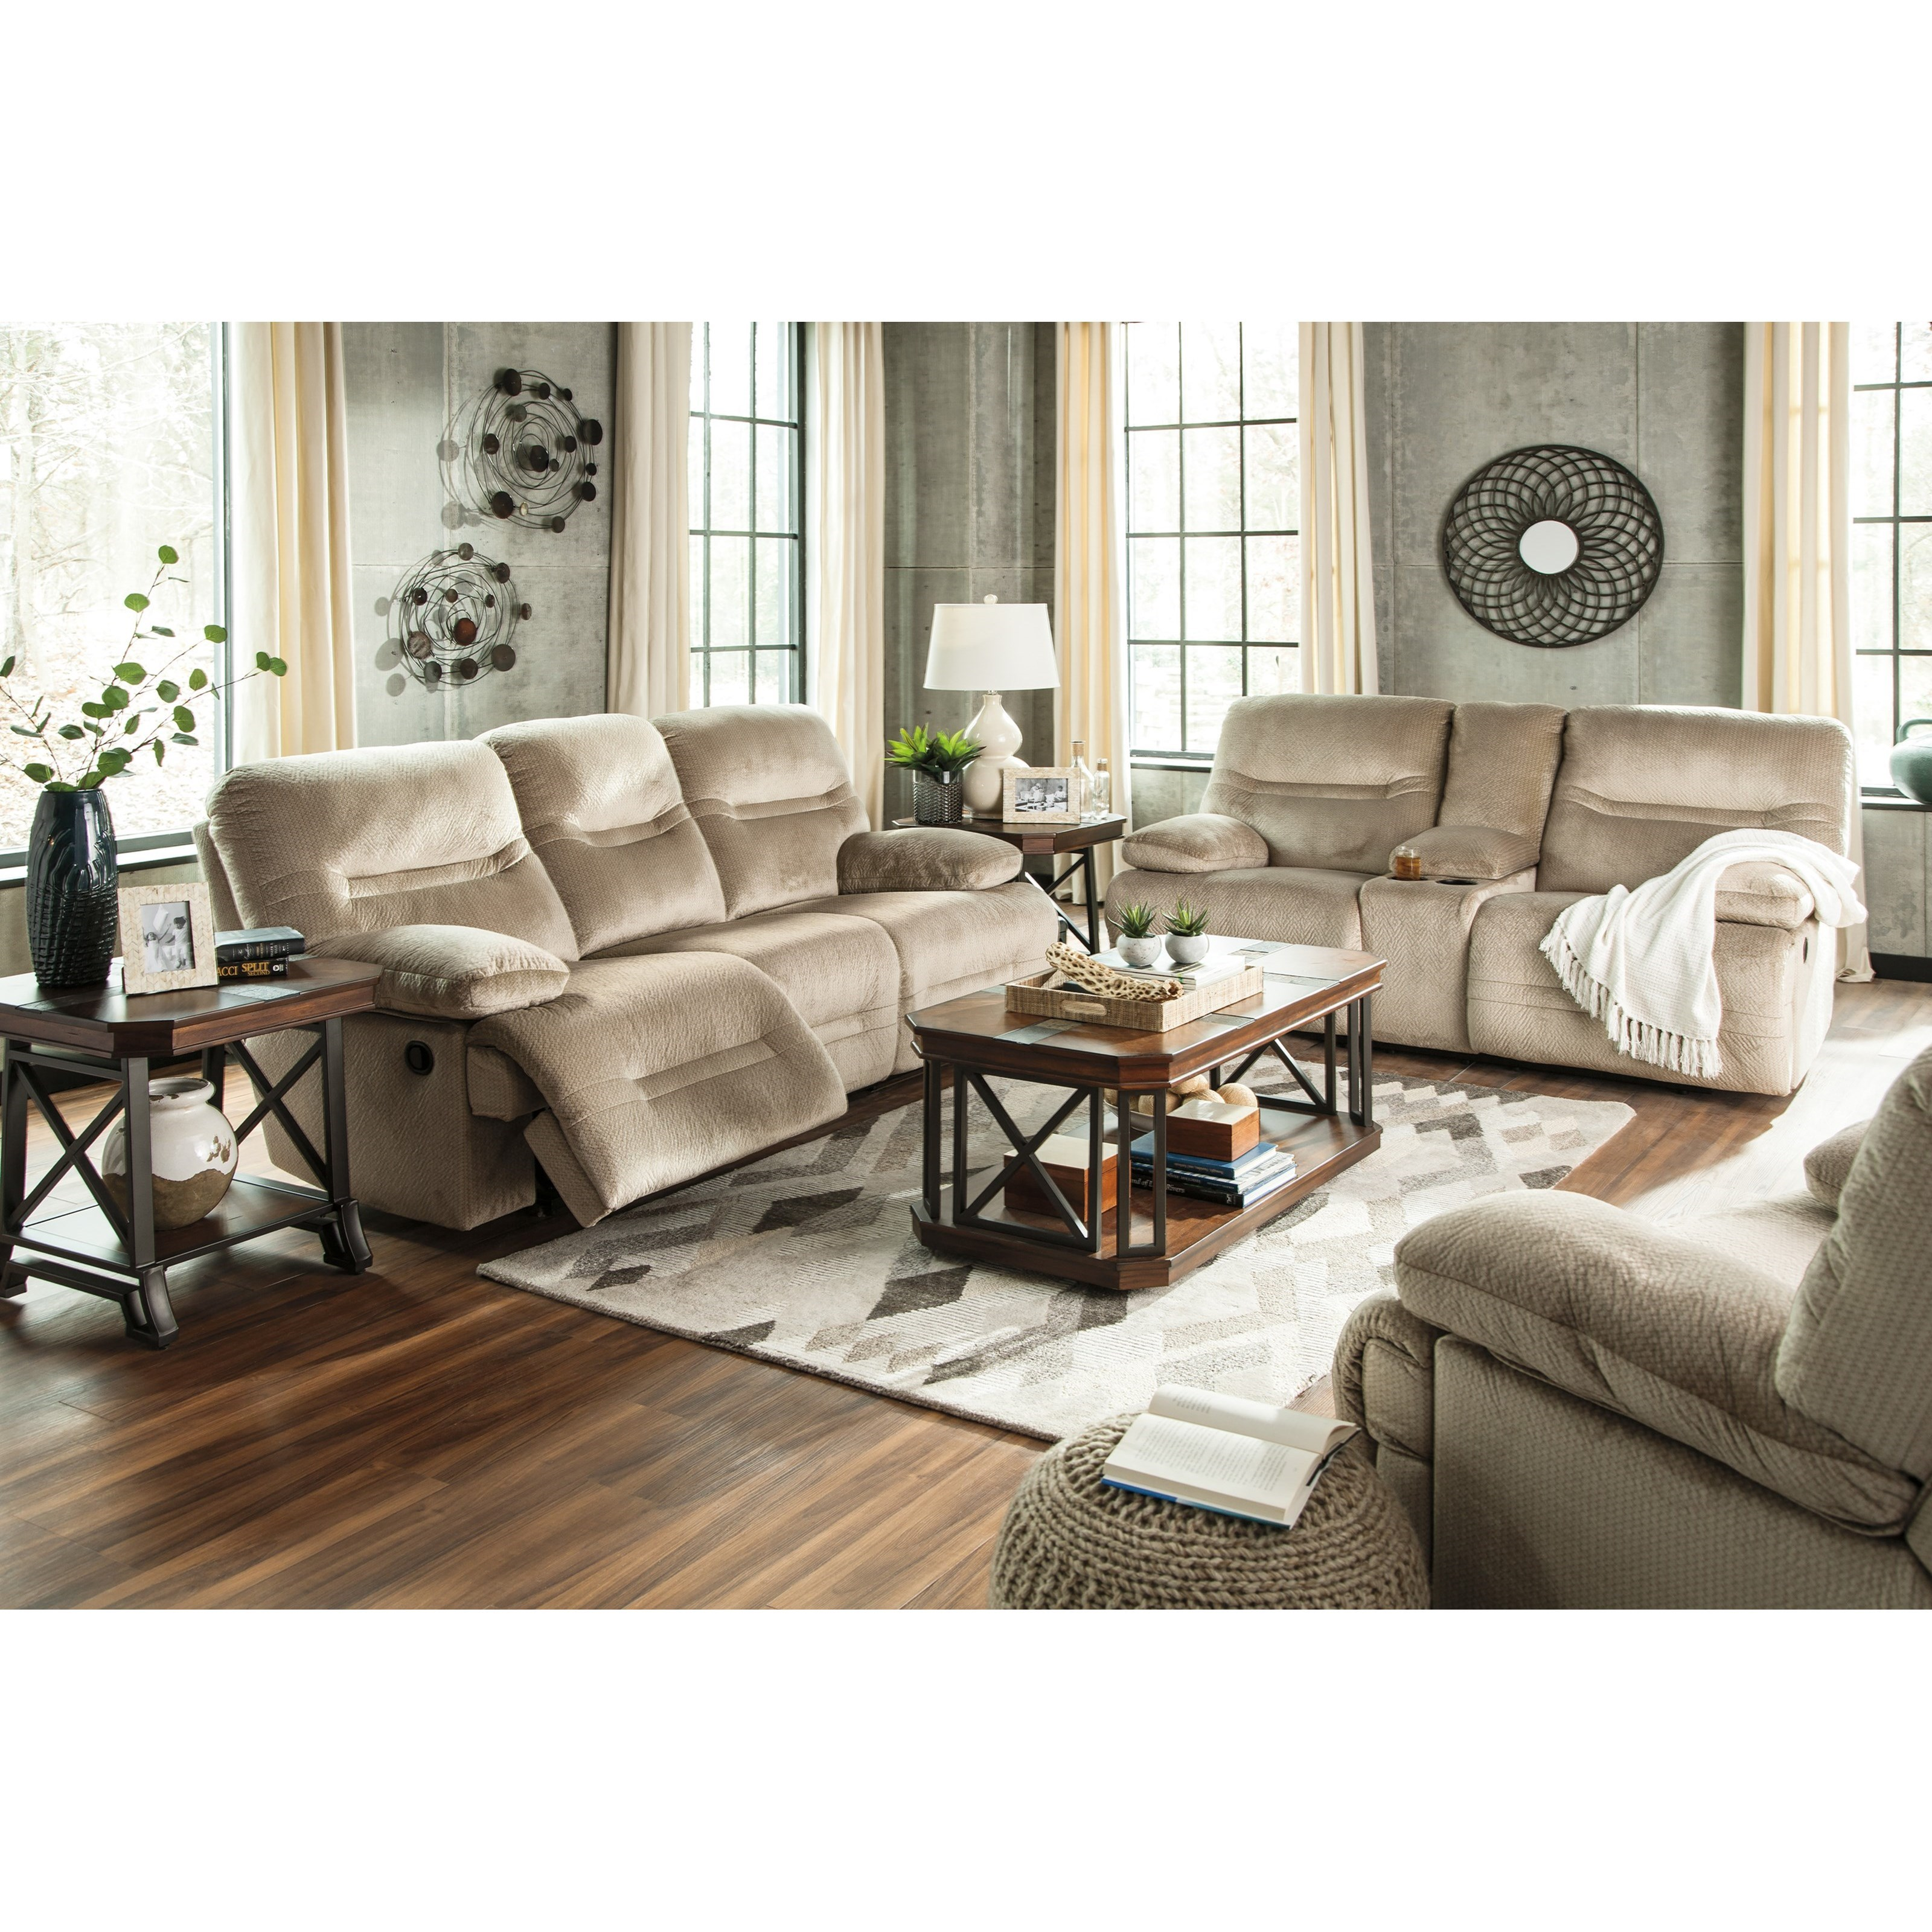 Signature design by ashley brayburn reclining living room for Living room furniture groups